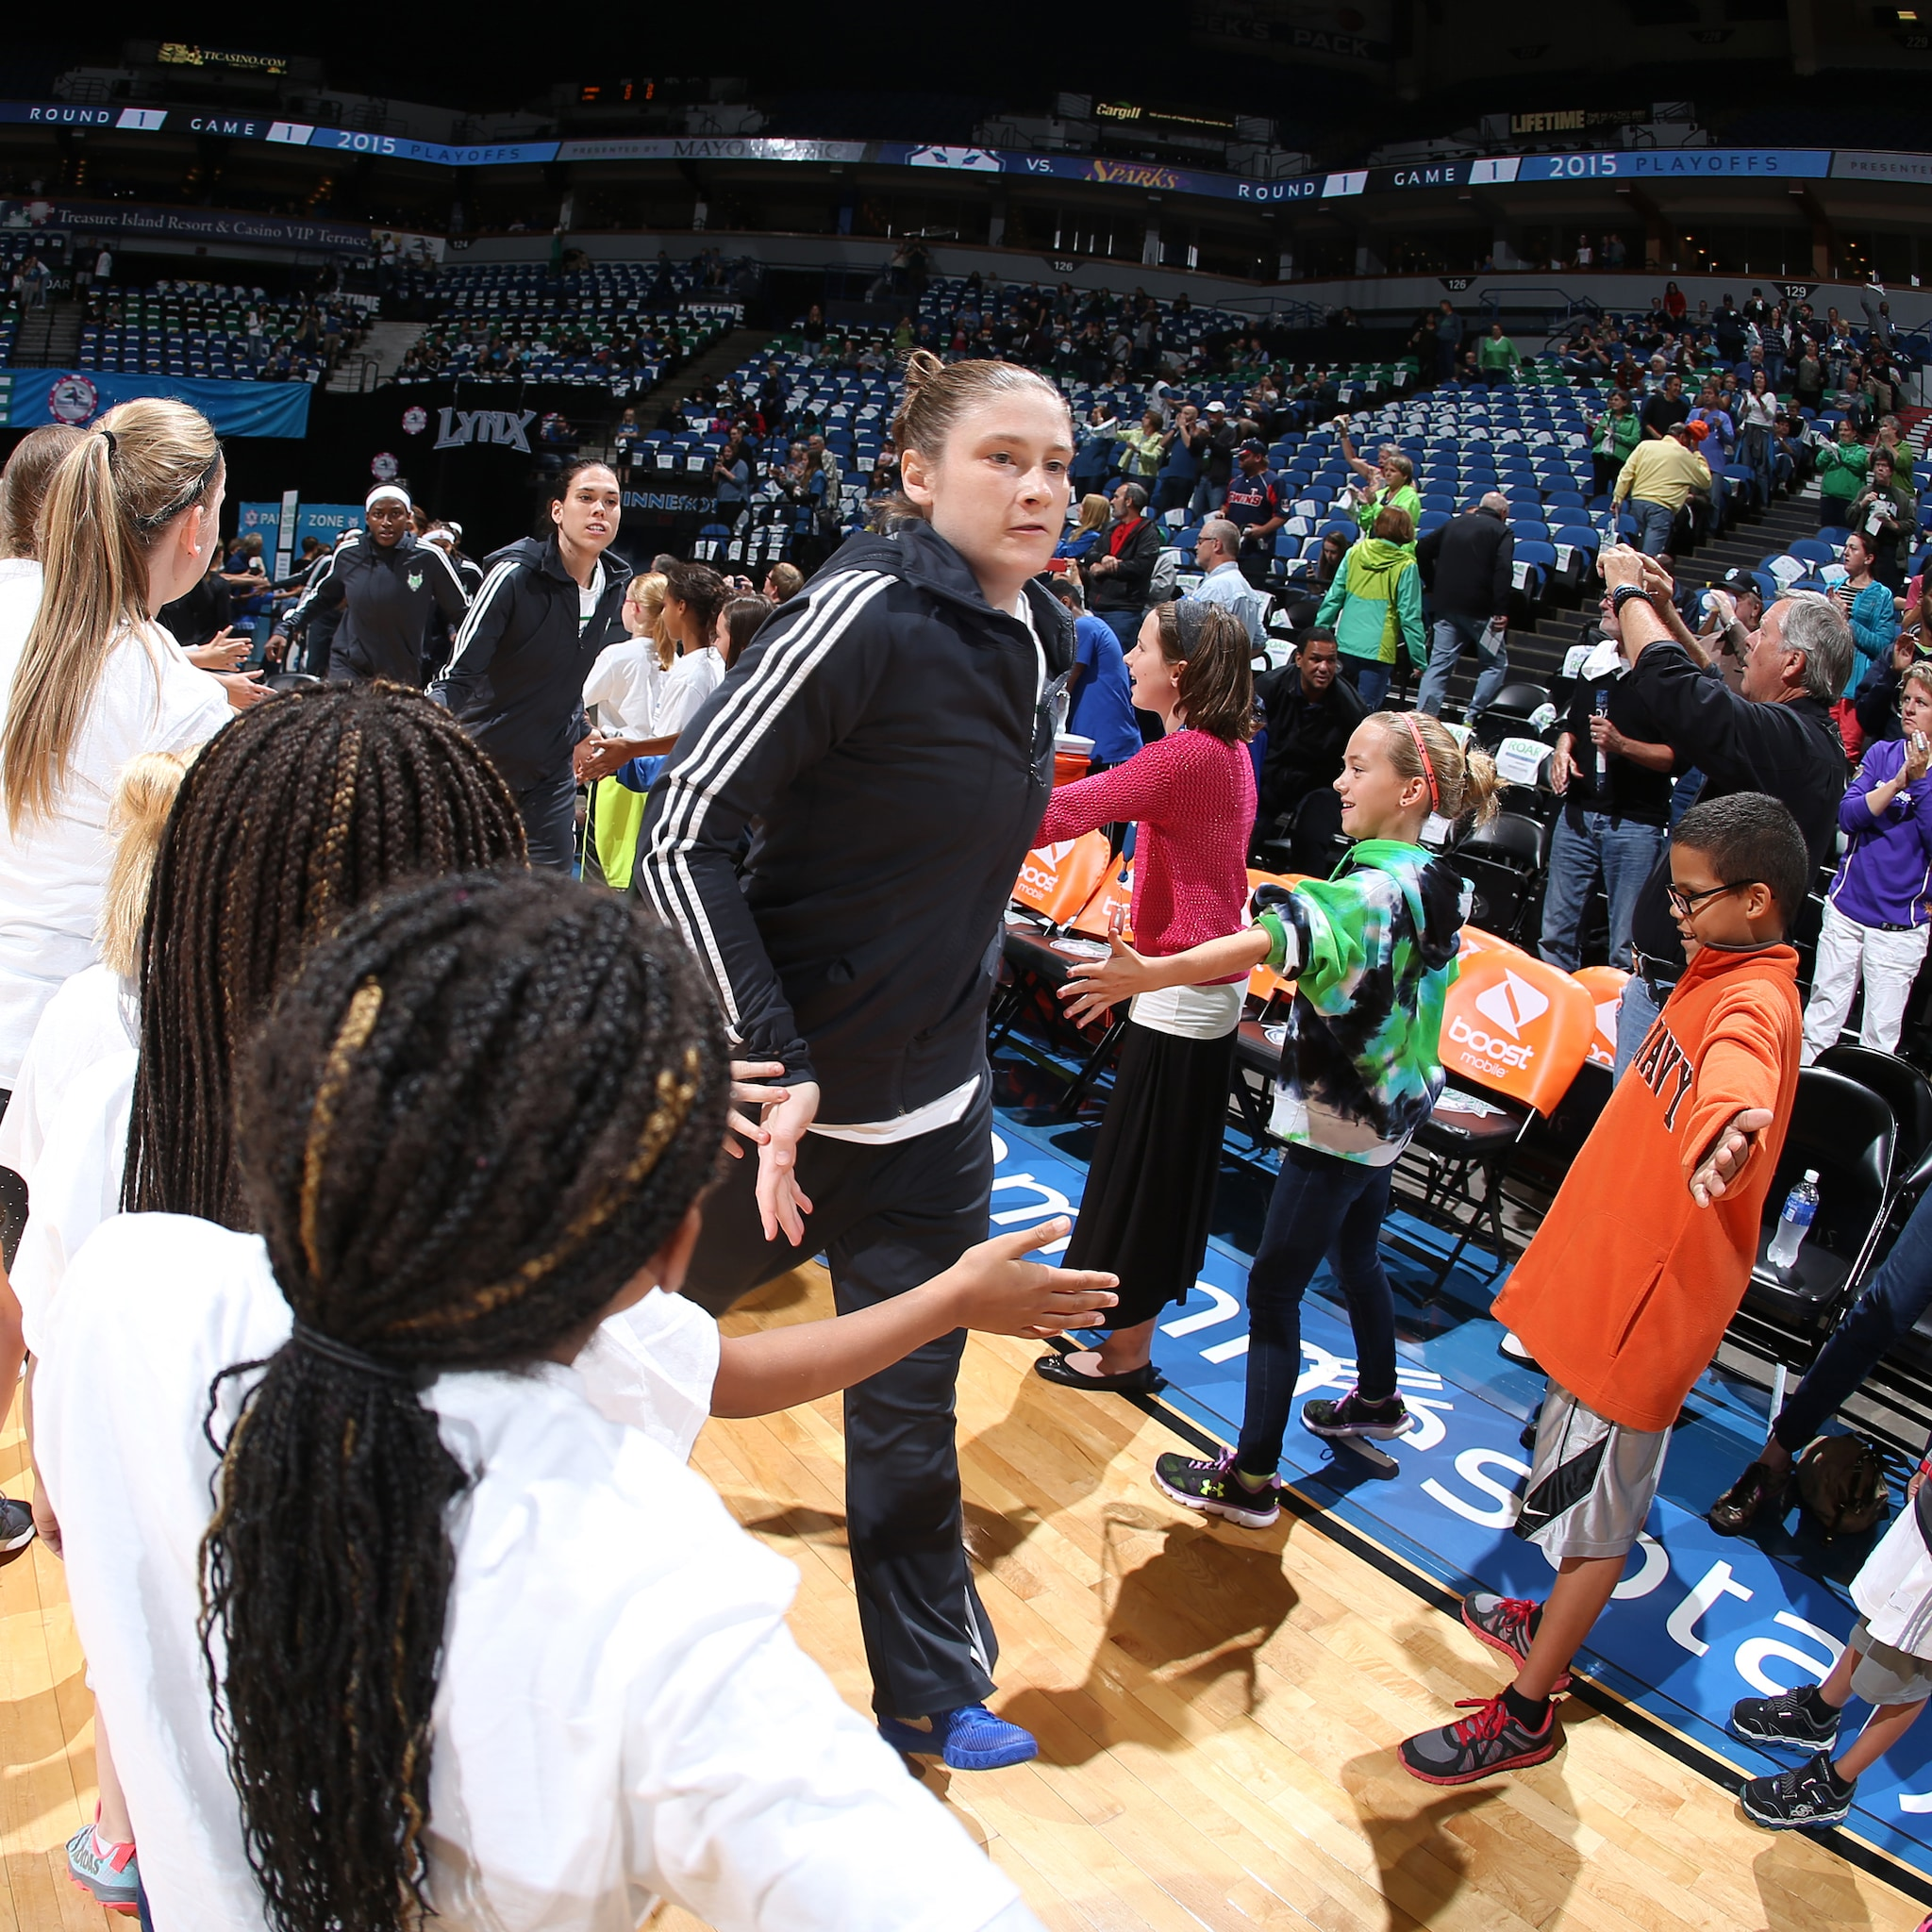 MINNEAPOLIS, MN - SEPTEMBER 18:  Lindsay Whalen #13 of the Minnesota Lynx gets introduced before the game against the Los Angeles Sparks in Game 1 of the 2015 WNBA Western Conference Semifinal on September 18, 2015 at Target Center in Minneapolis, Minnesota.  NOTE TO USER: User expressly acknowledges and agrees that, by downloading and or using this Photograph, user is consenting to the terms and conditions of the Getty Images License Agreement. Mandatory Copyright Notice: Copyright 2015 NBAE (Photo by David Sherman/NBAE via Getty Images)